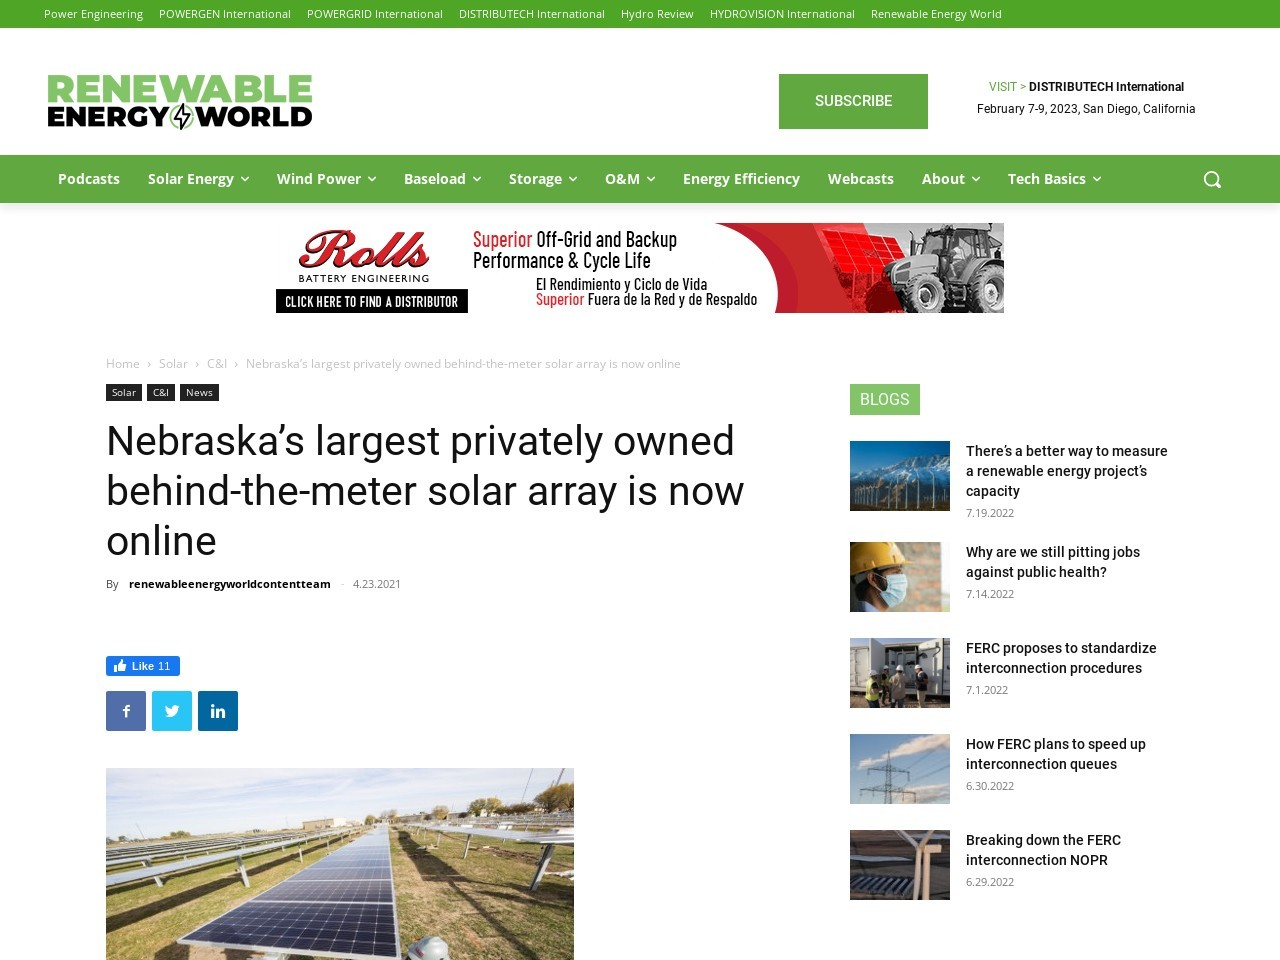 Nebraska's largest privately owned behind-the-meter solar array is now online